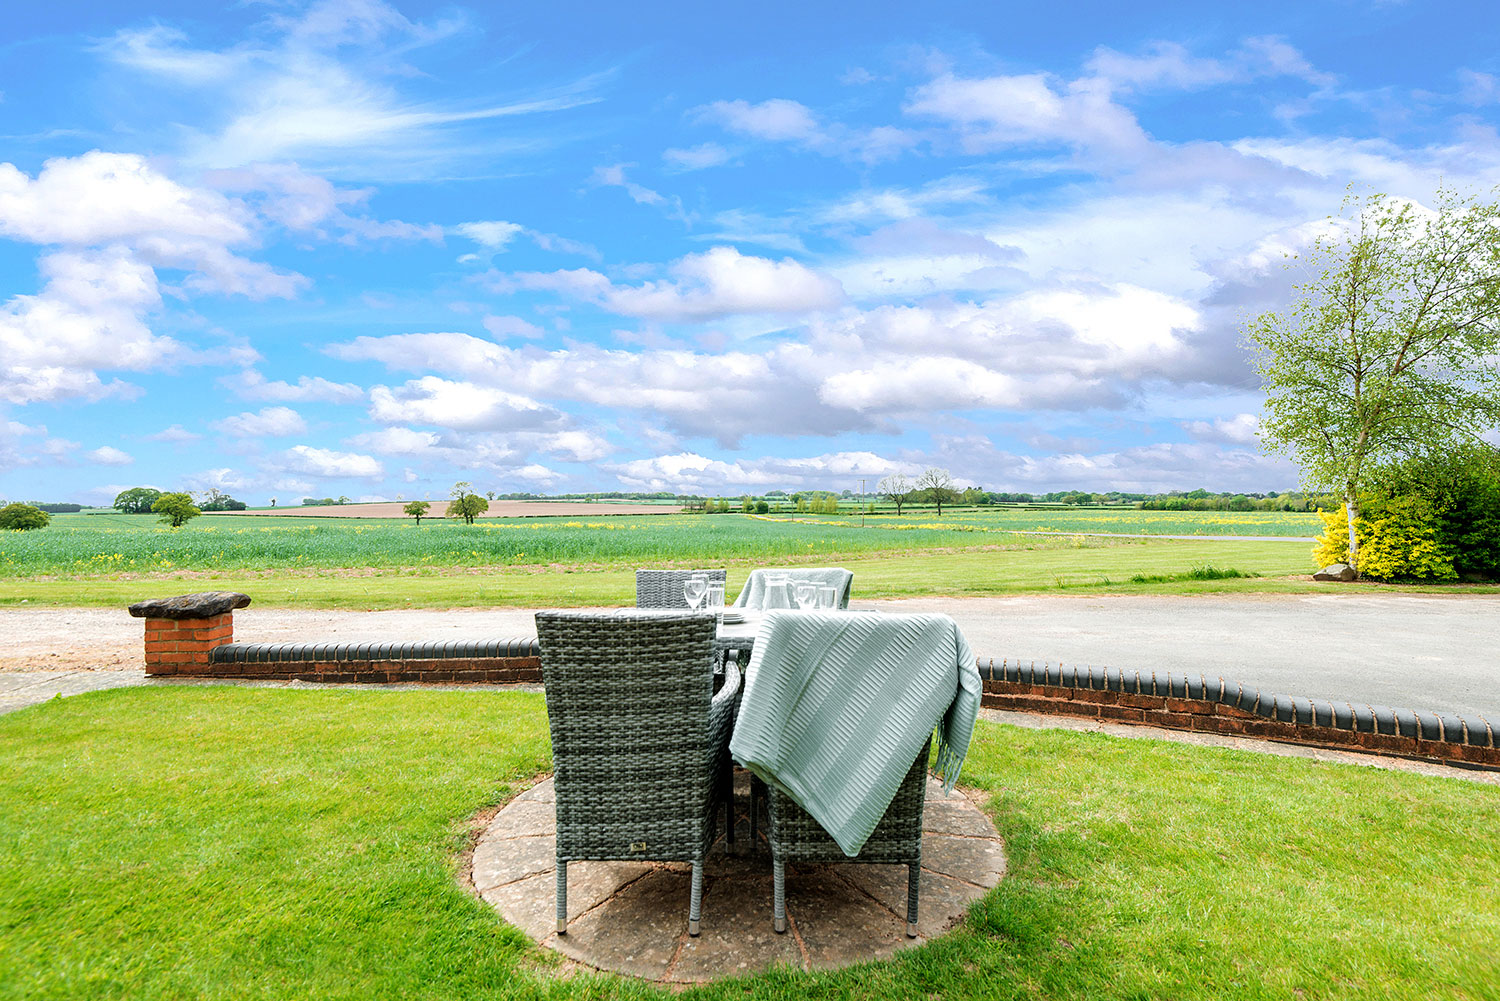 Holiday cottages set amid rolling cornfields in rural Leicestershire   Upper Rectory Farm Cottages